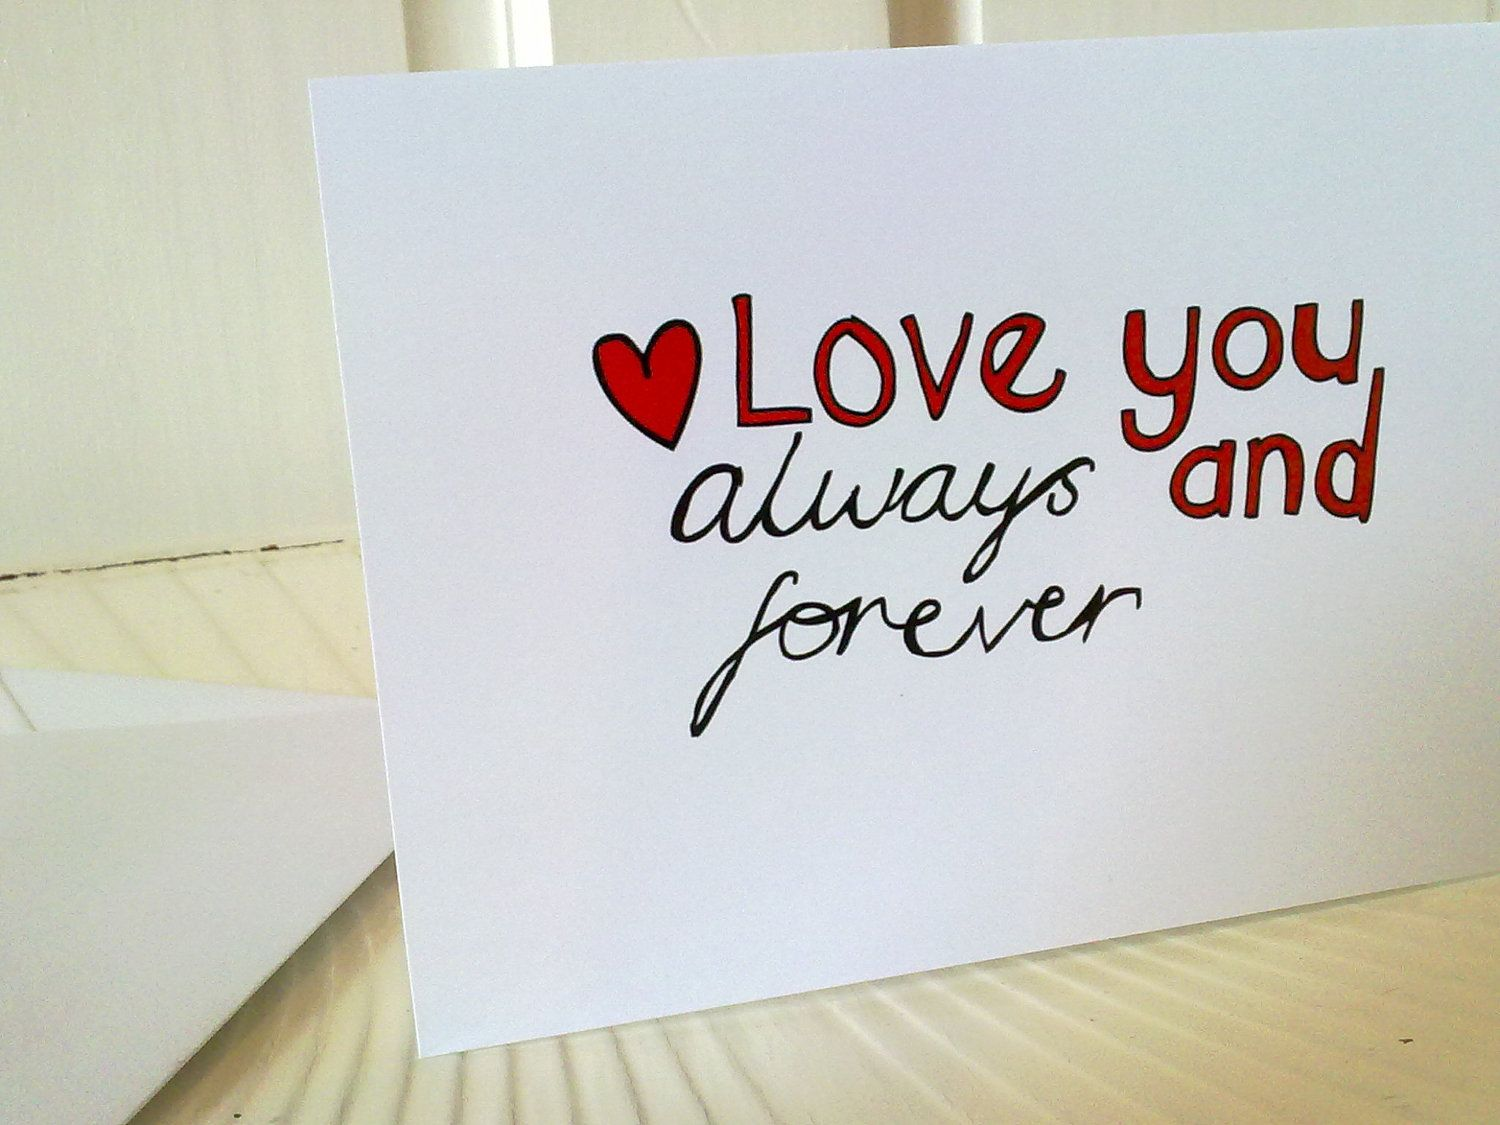 love you always and forever | Items similar to Love You Always and Forever  Card on Etsy